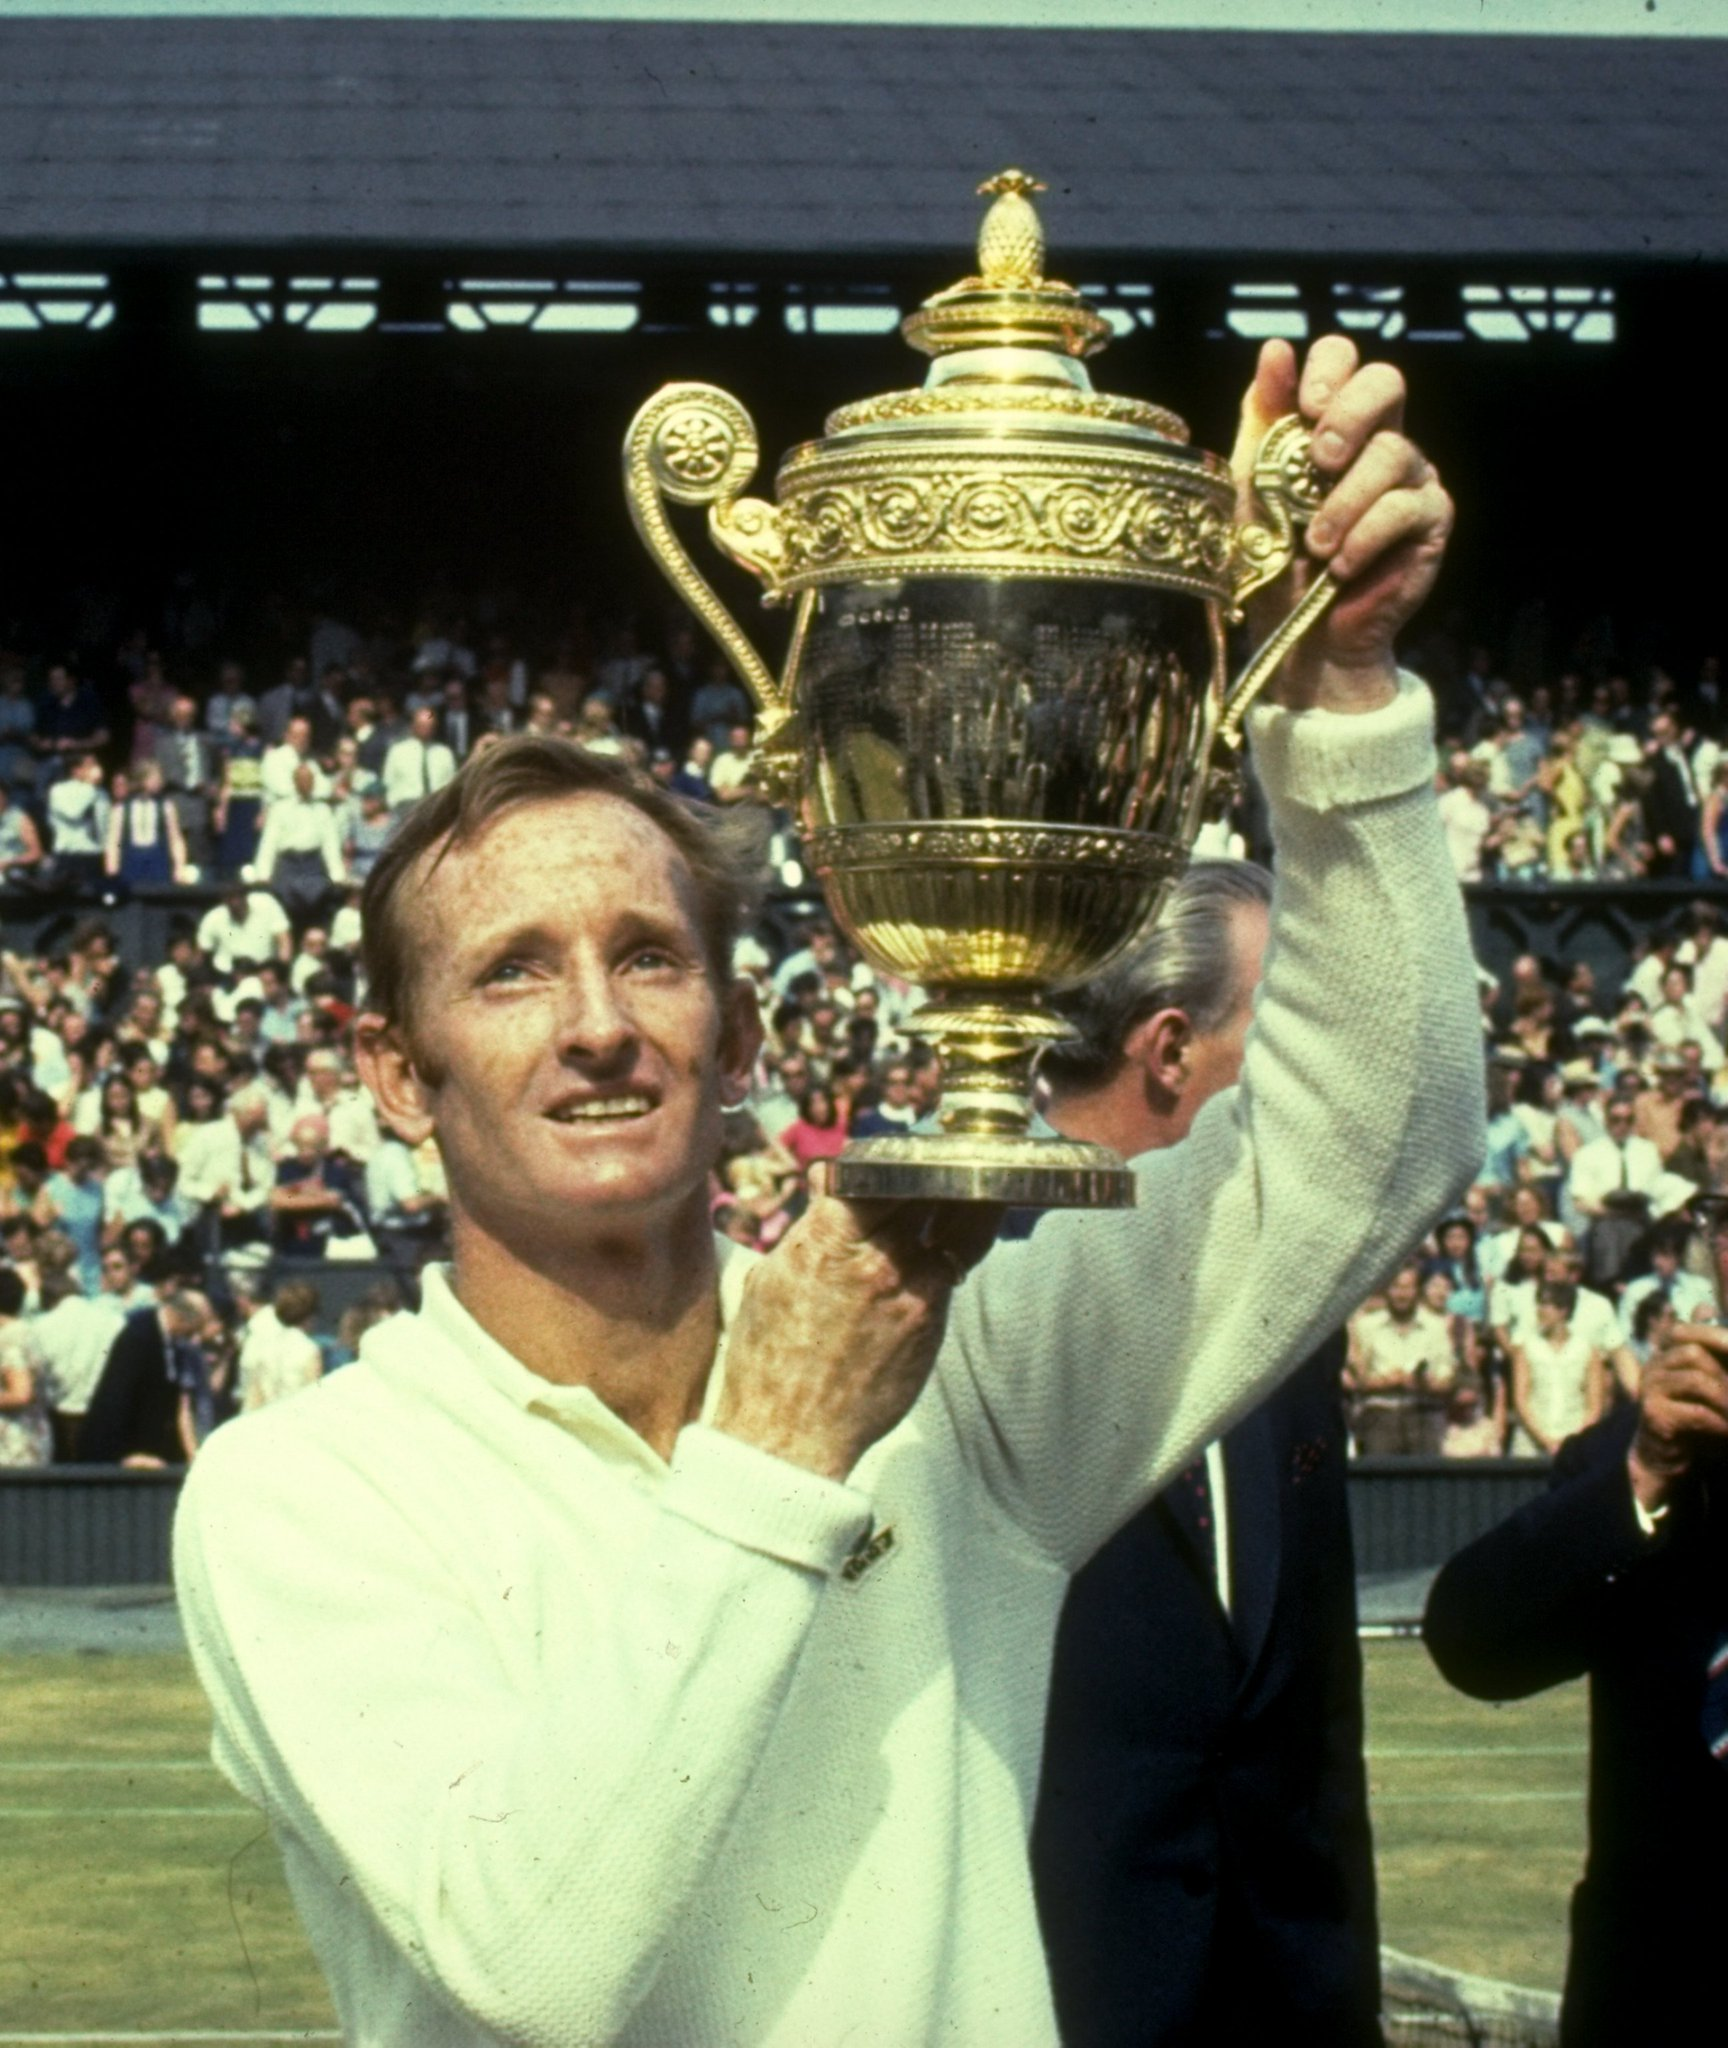 A legend of the sport, as simple as that.  Happy 80th birthday to @rodlaver �� https://t.co/tDnkqHhhmt